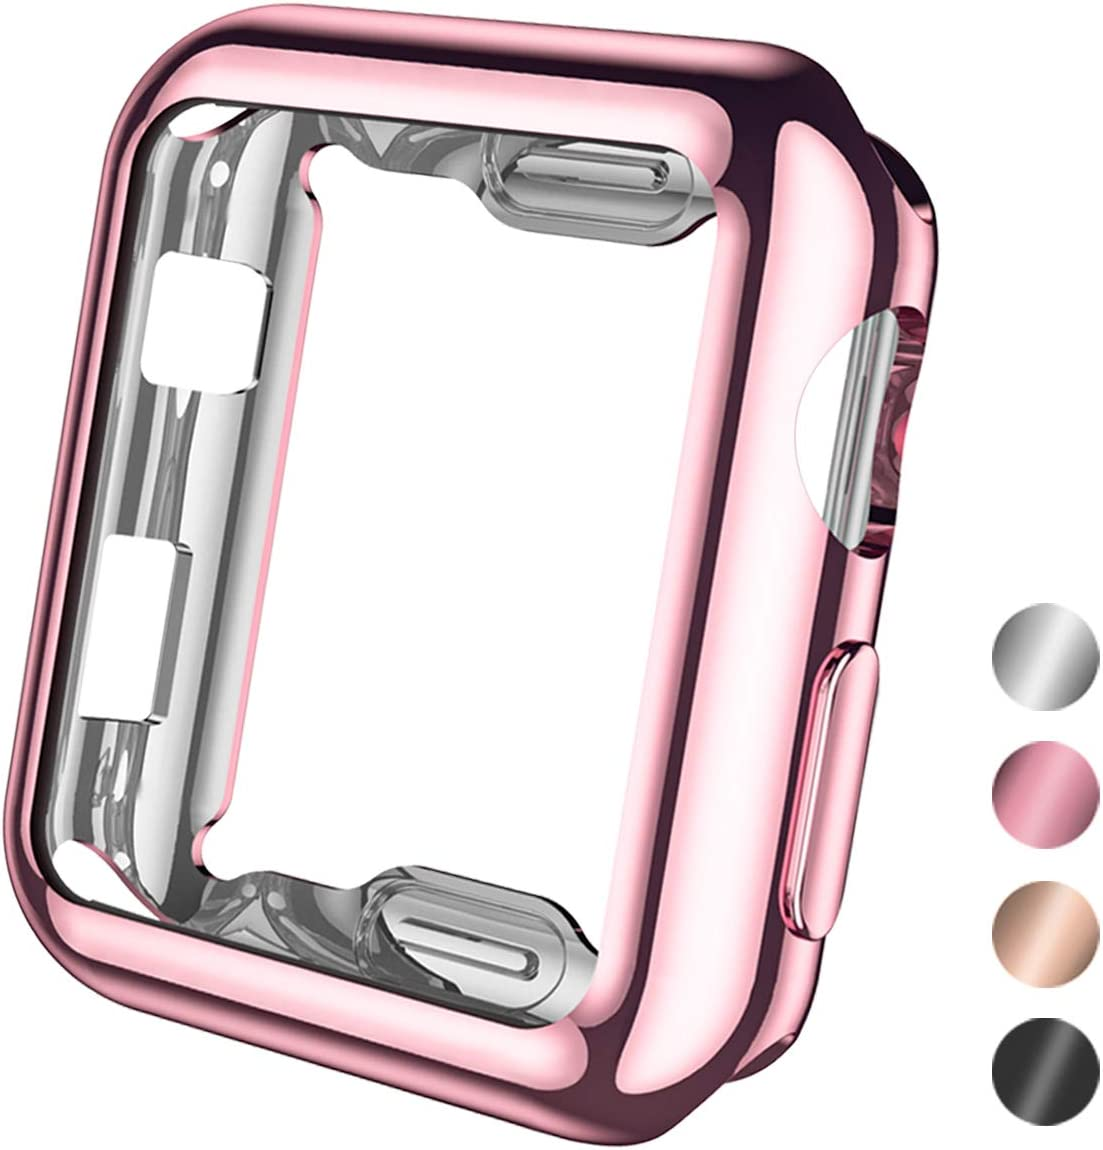 Henva Compatible with Apple Watch Case 38mm Series 3, Series 2, Series 1, Soft Overall Protective Case Ultra-Thin TPU Cover Compatible for iWatch 38mm Series 3 2 1, Rose Pink